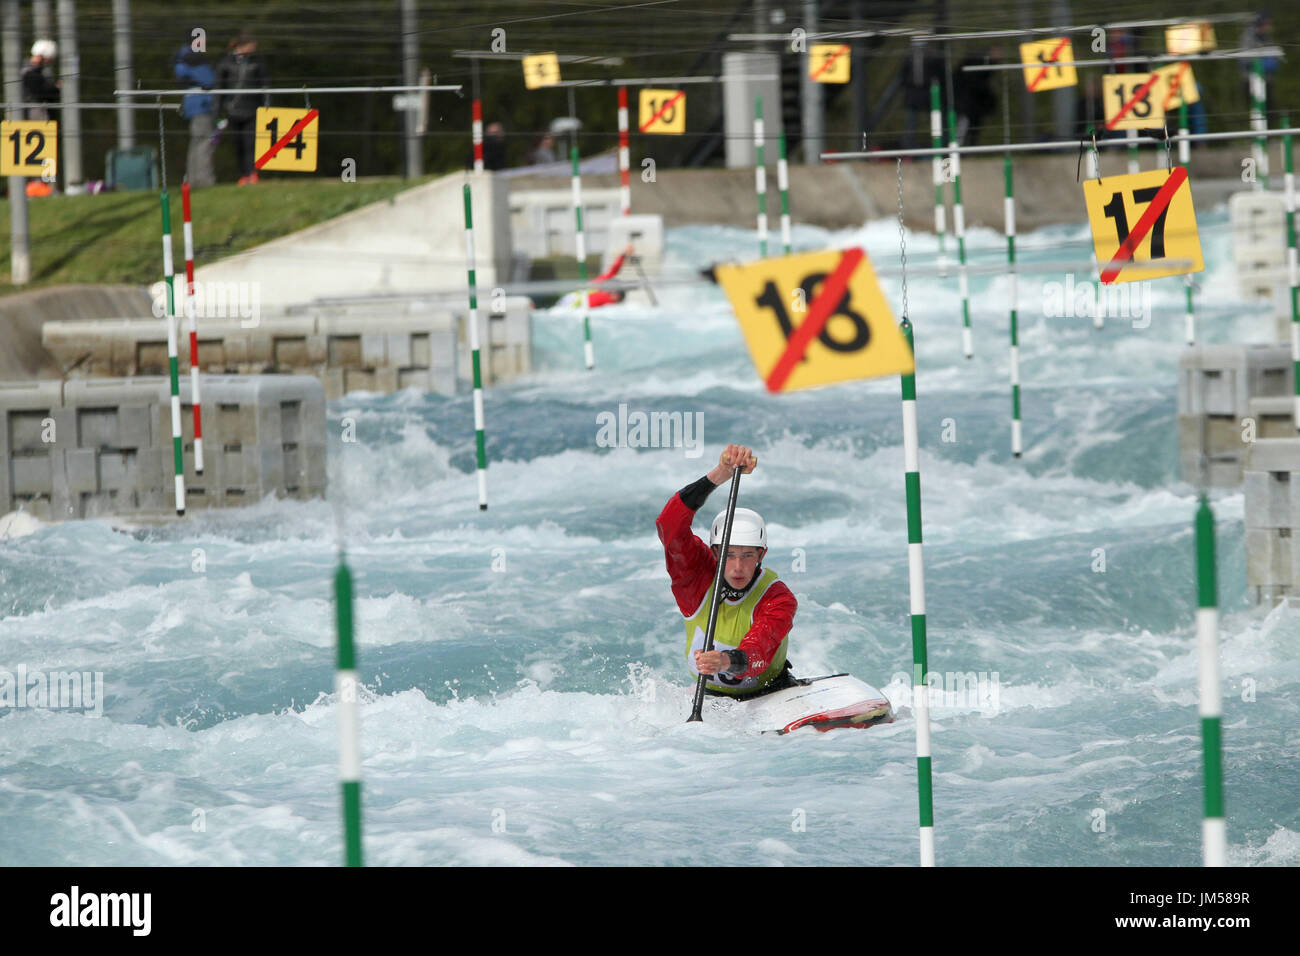 Robert Fernie competes at Lee Valley White Water Centre during British selection for the team GB for European and World championships. - Stock Image